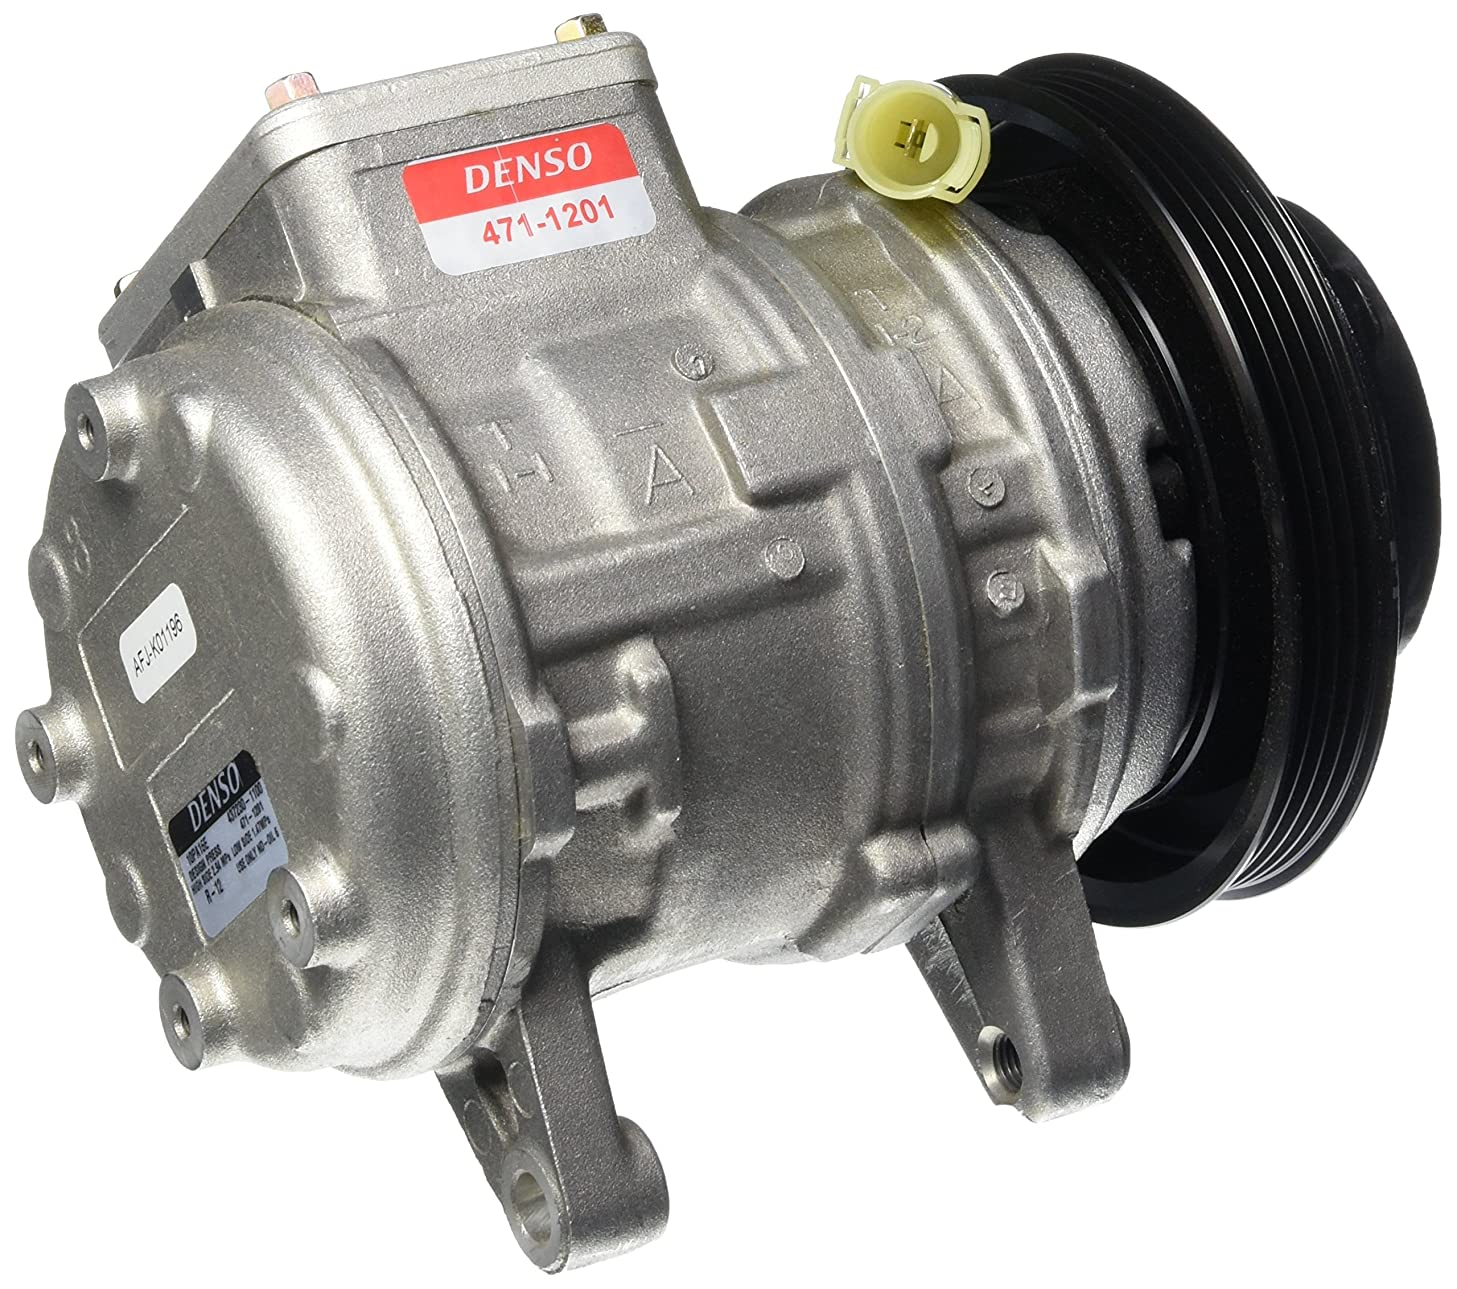 Denso 471-1201 New Compressor with Clutch